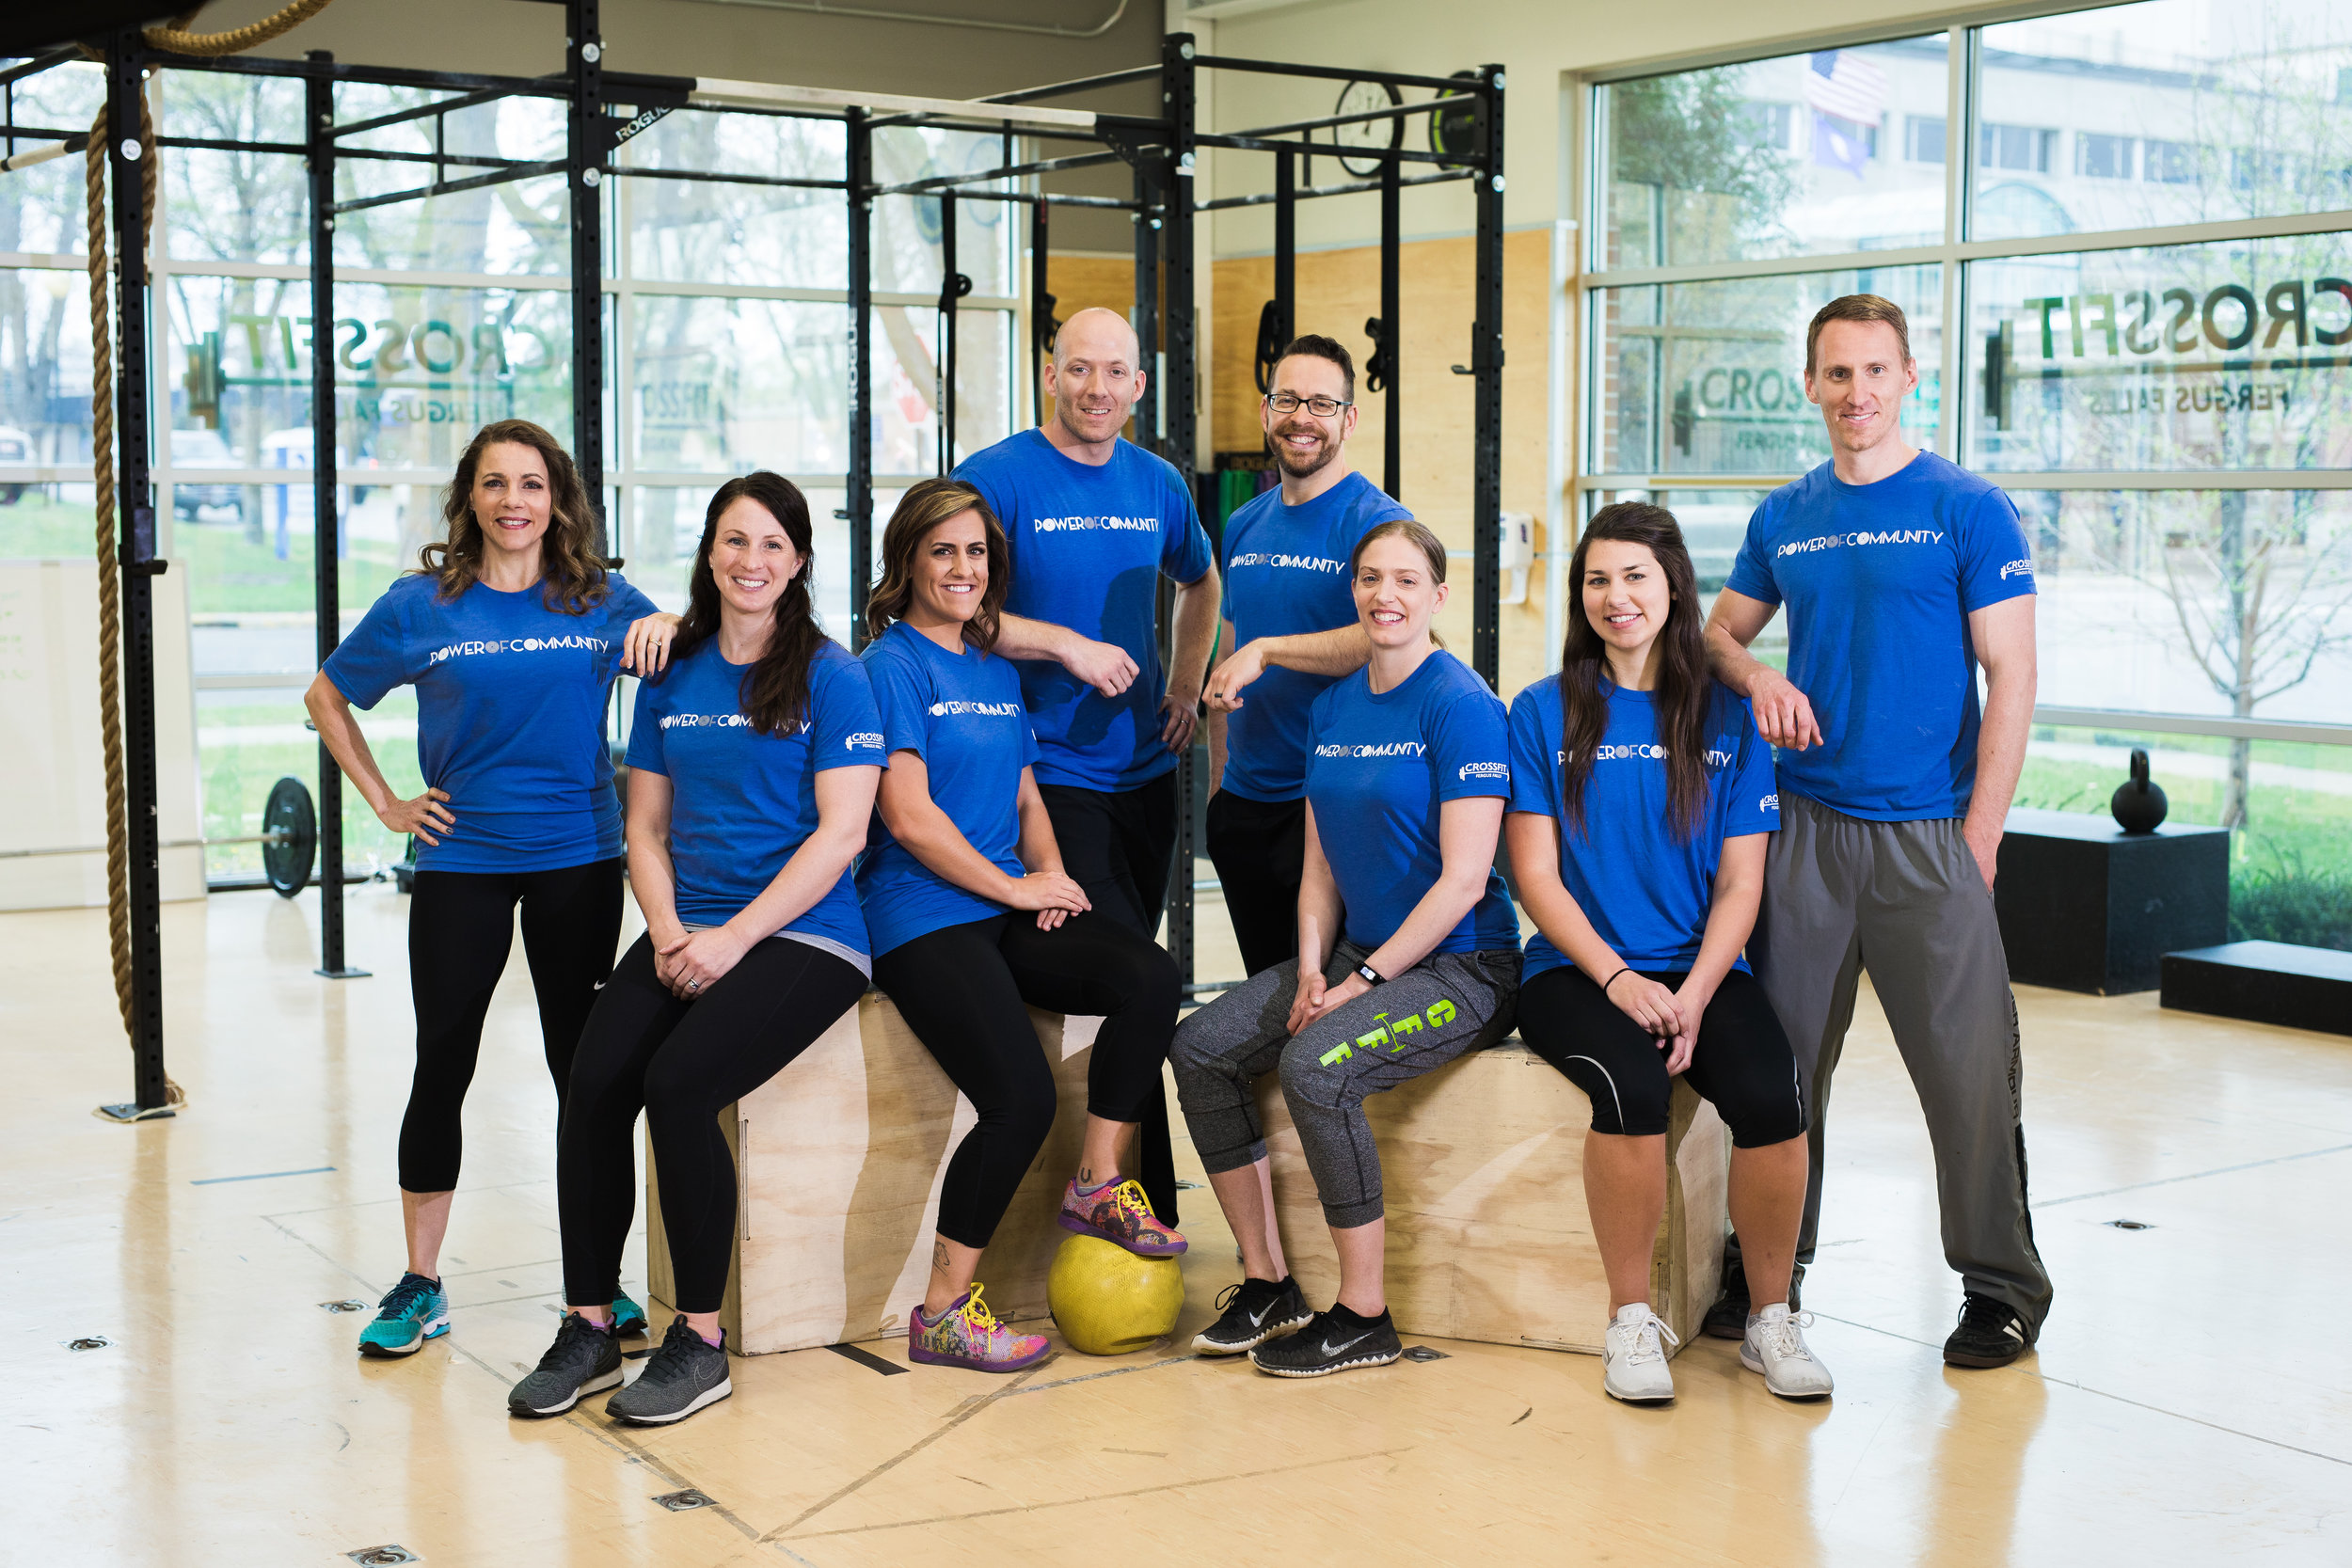 Crossfit Lake Region Healthcare   Ad work for LRHC and H2M marketing firm